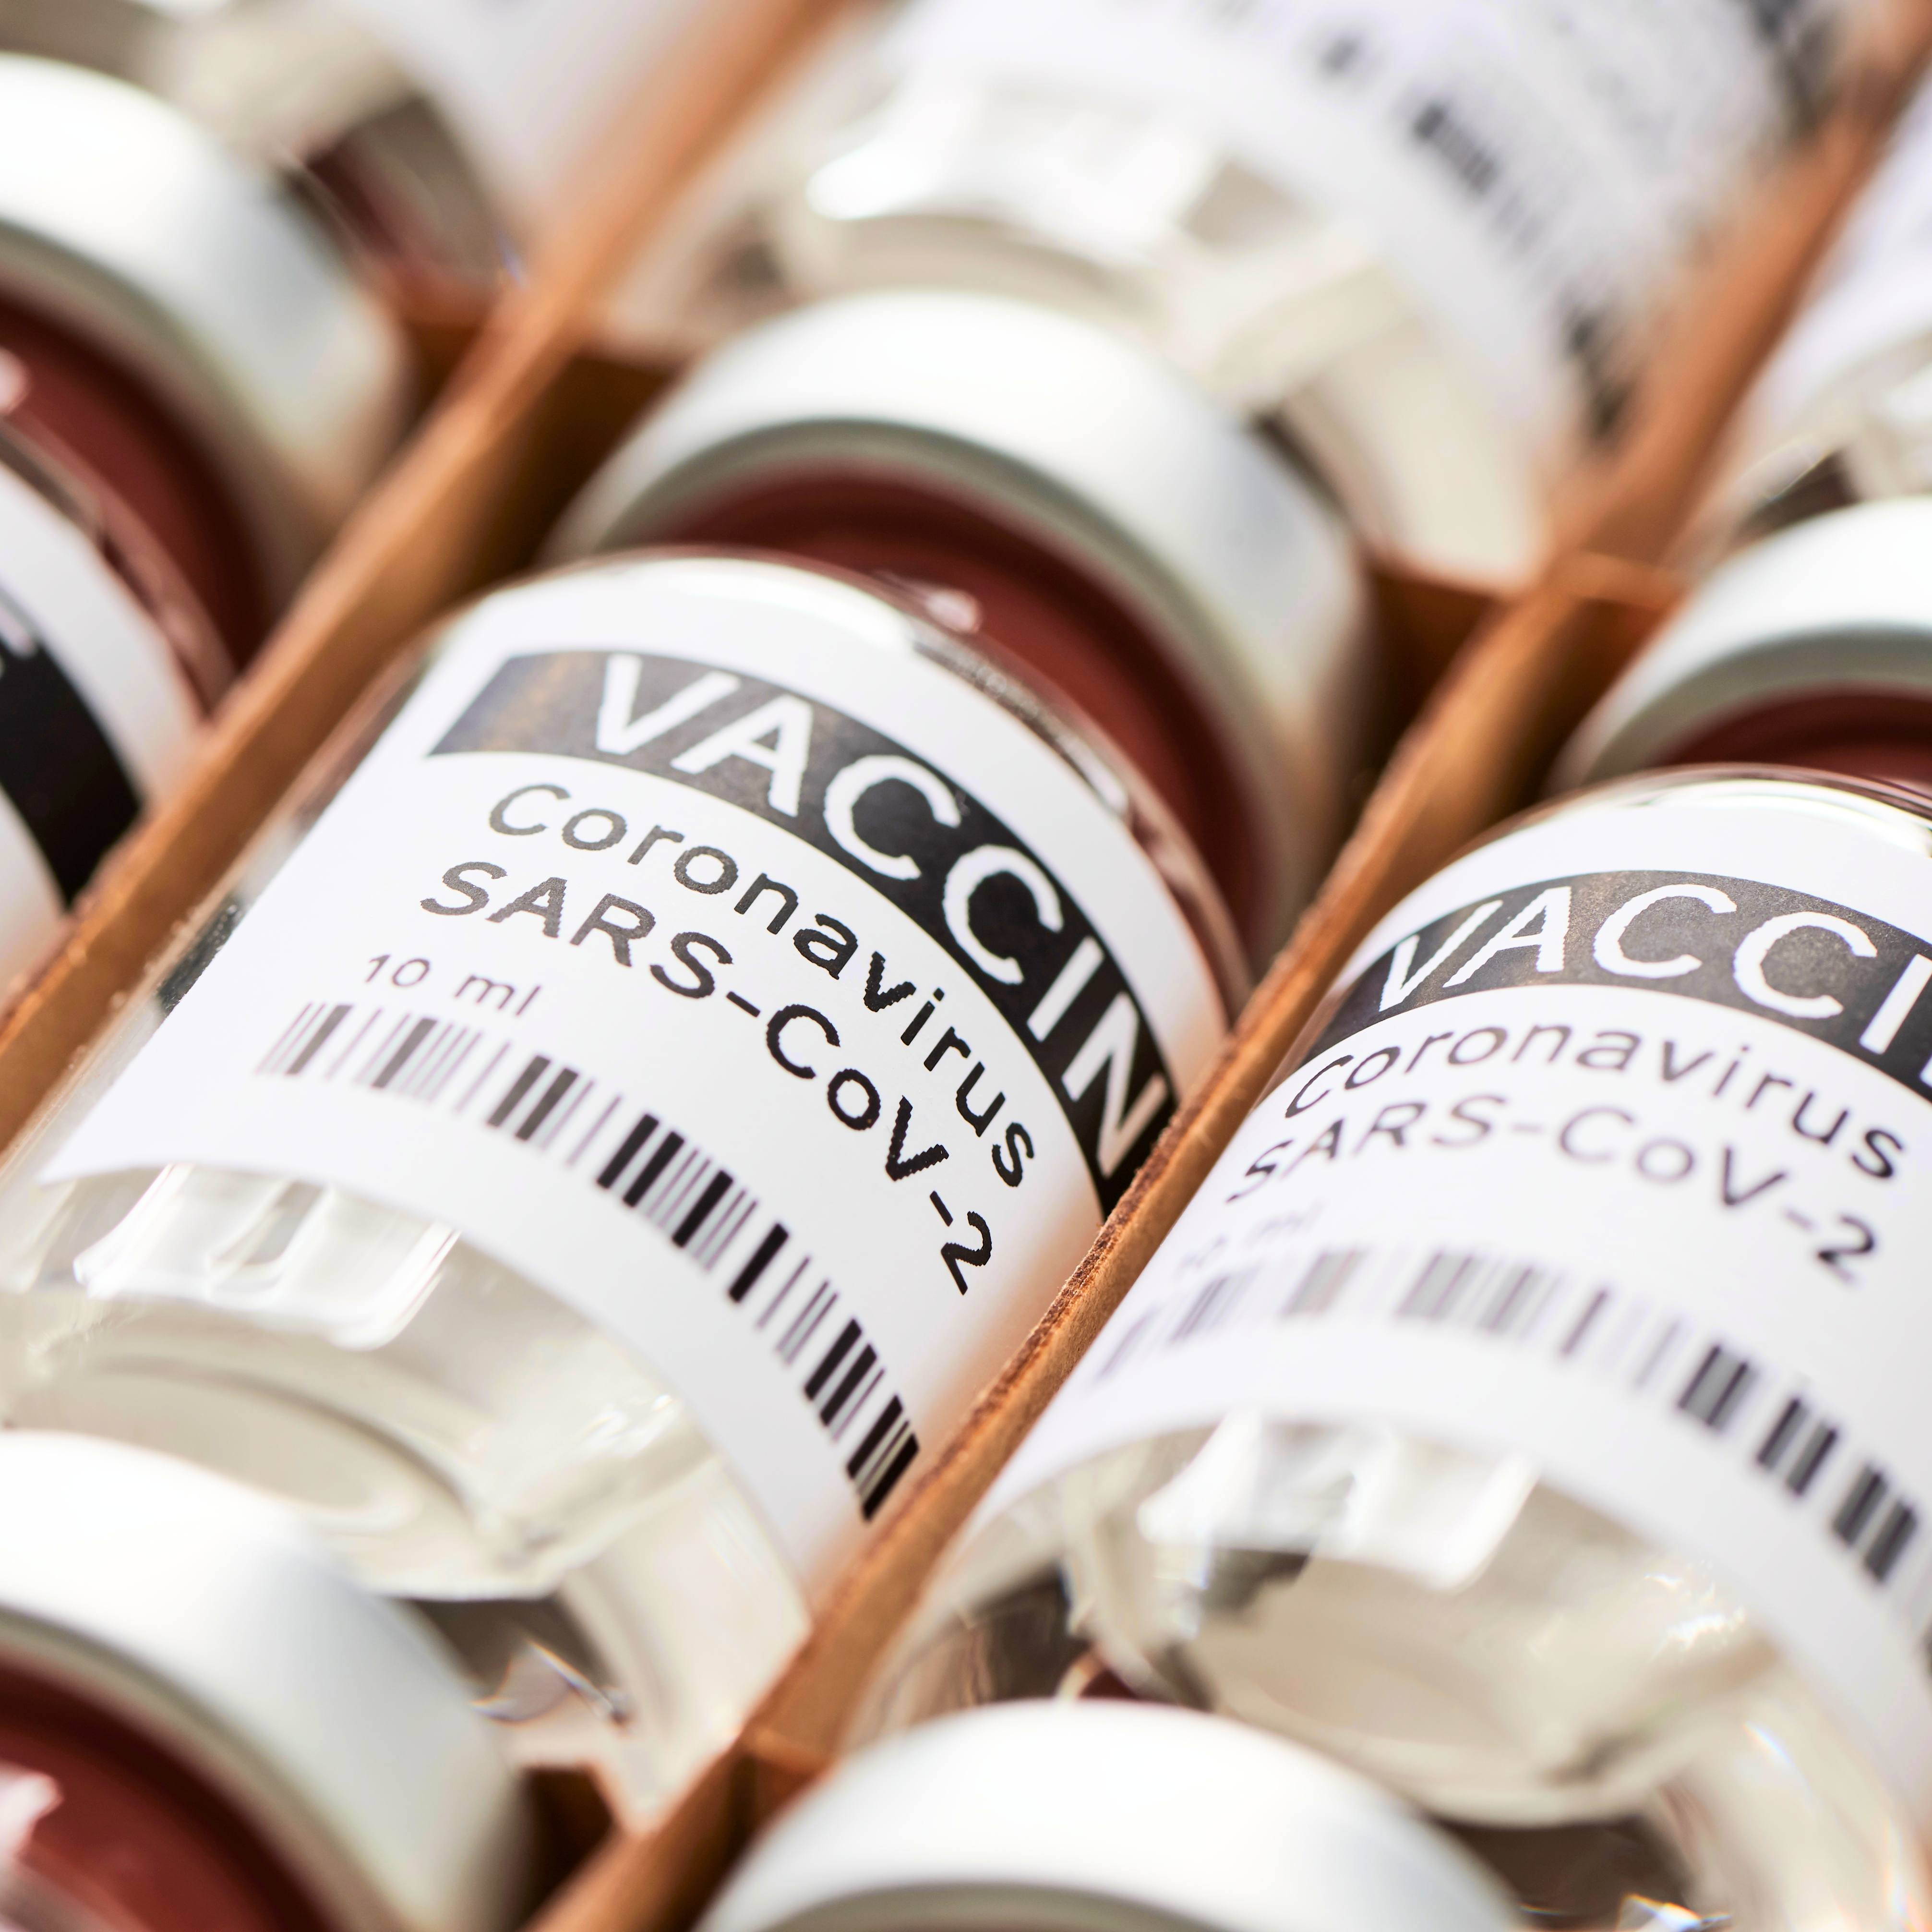 several laboratory vials labeled COVID-19 Coronavirus SARS-CoV-2 Vaccine in a delivery box